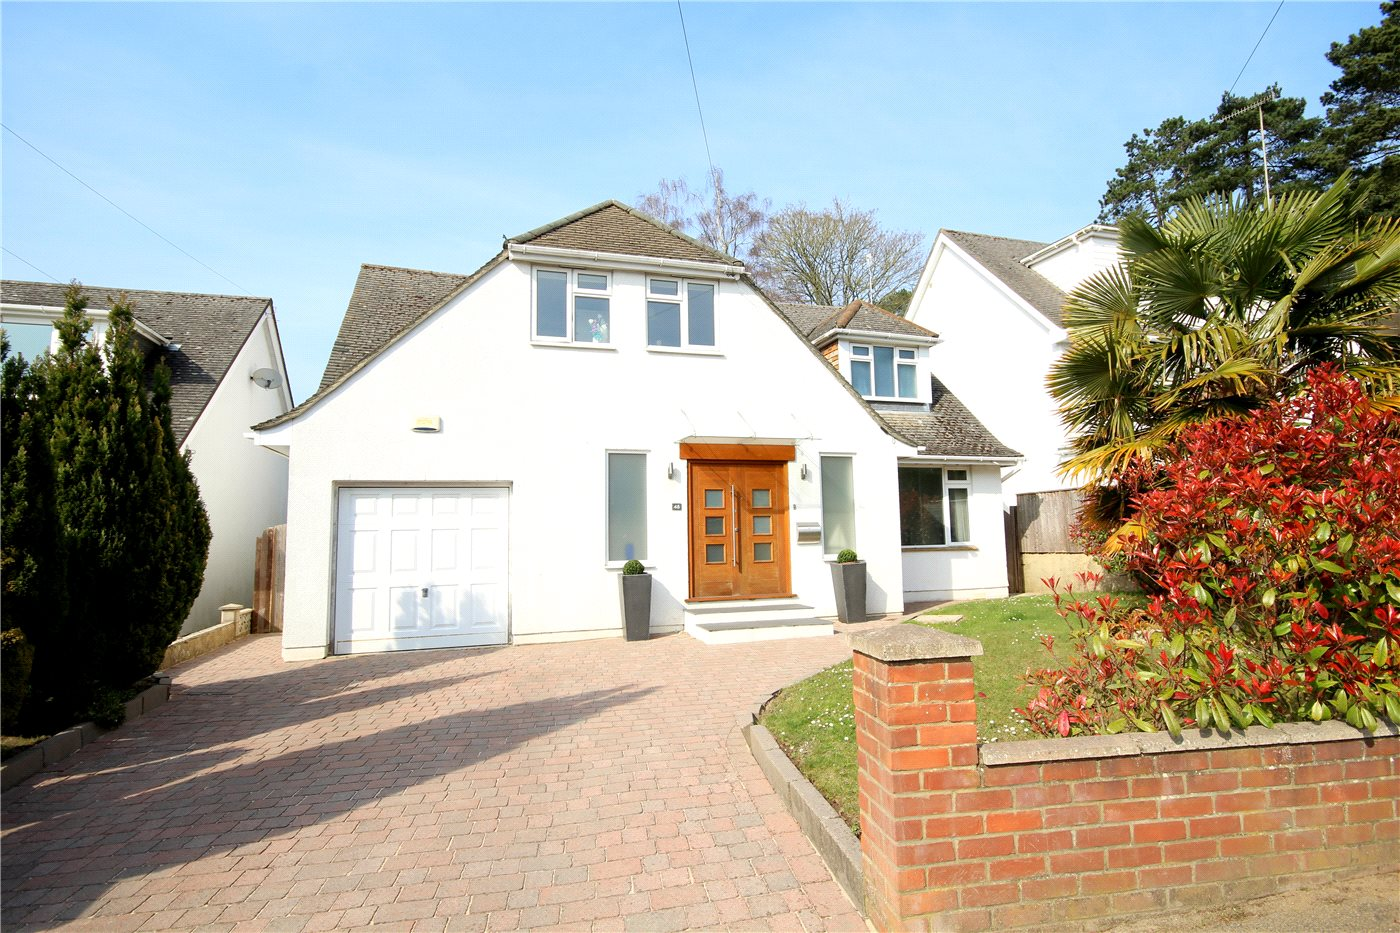 4 Bedrooms Detached House for sale in Links Road, Lower Parkstone, Poole, Dorset, BH14